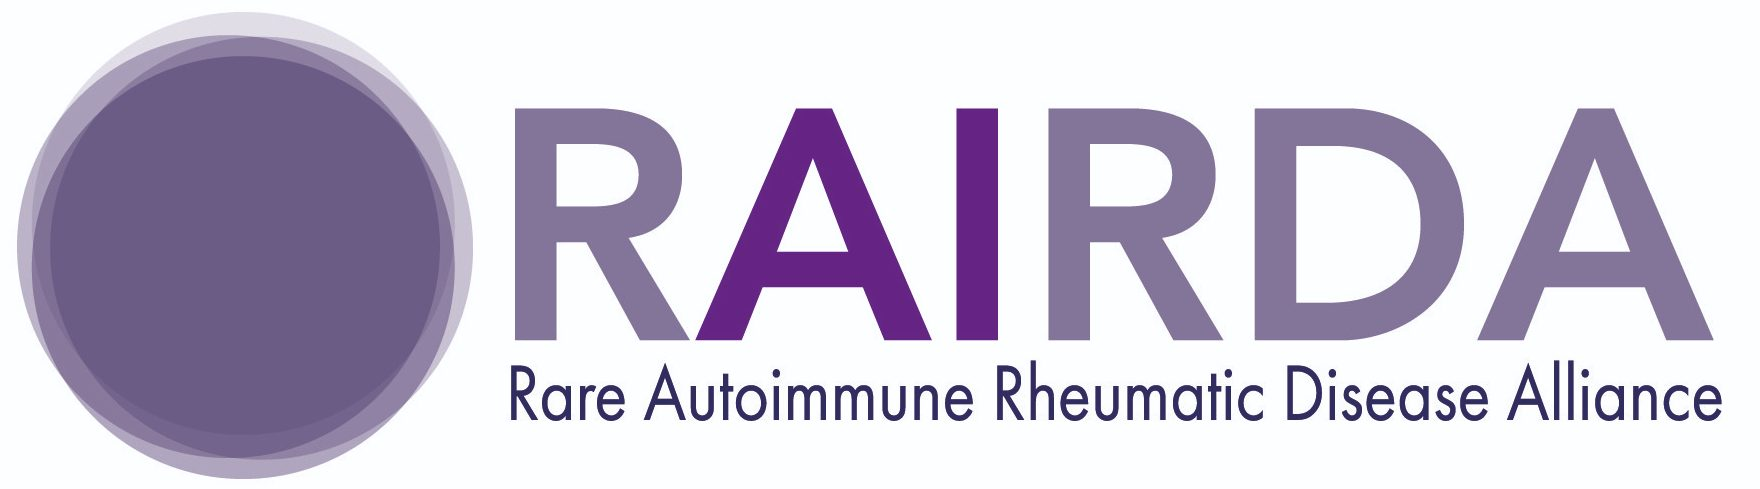 The Rare Autoimmune Rheumatic Disease Alliance